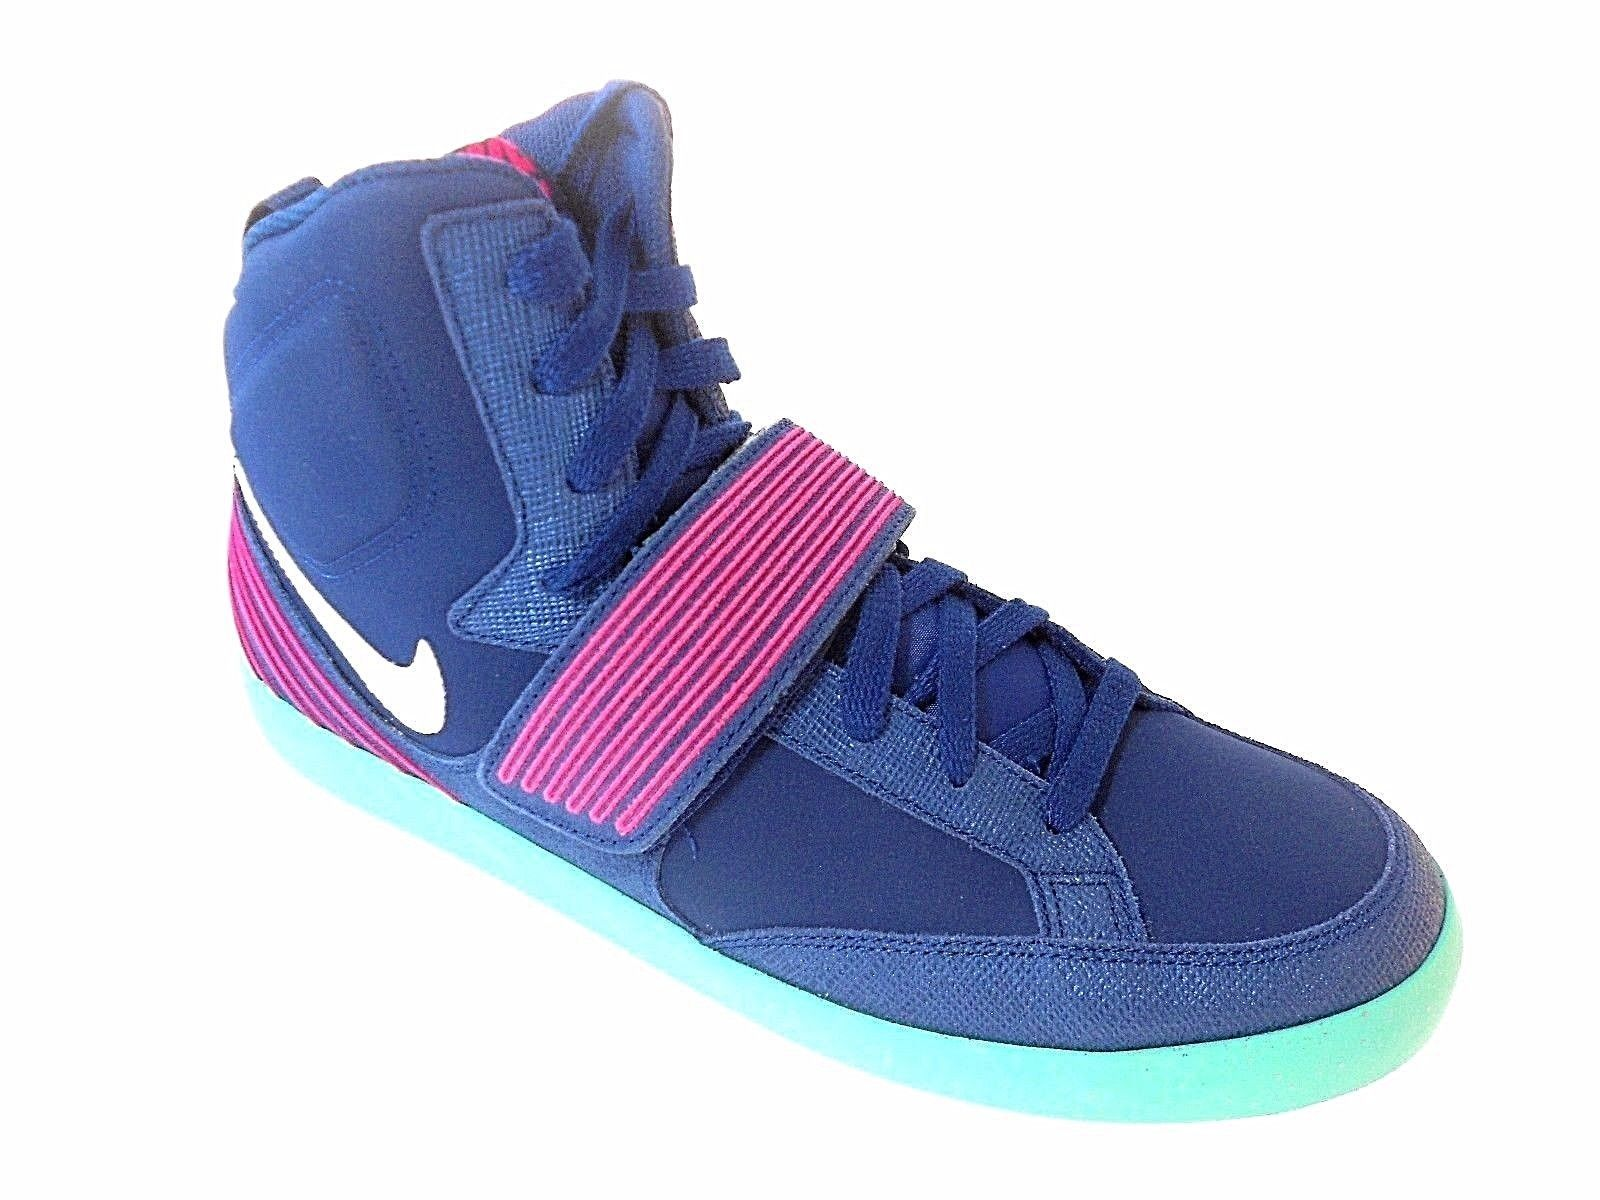 quality design c272f 49805 ... NIKE NSW SKYSTEPPER MEN S BRAVE BLUE PINK SHOES SZ 12.5, 13,  599277 ...